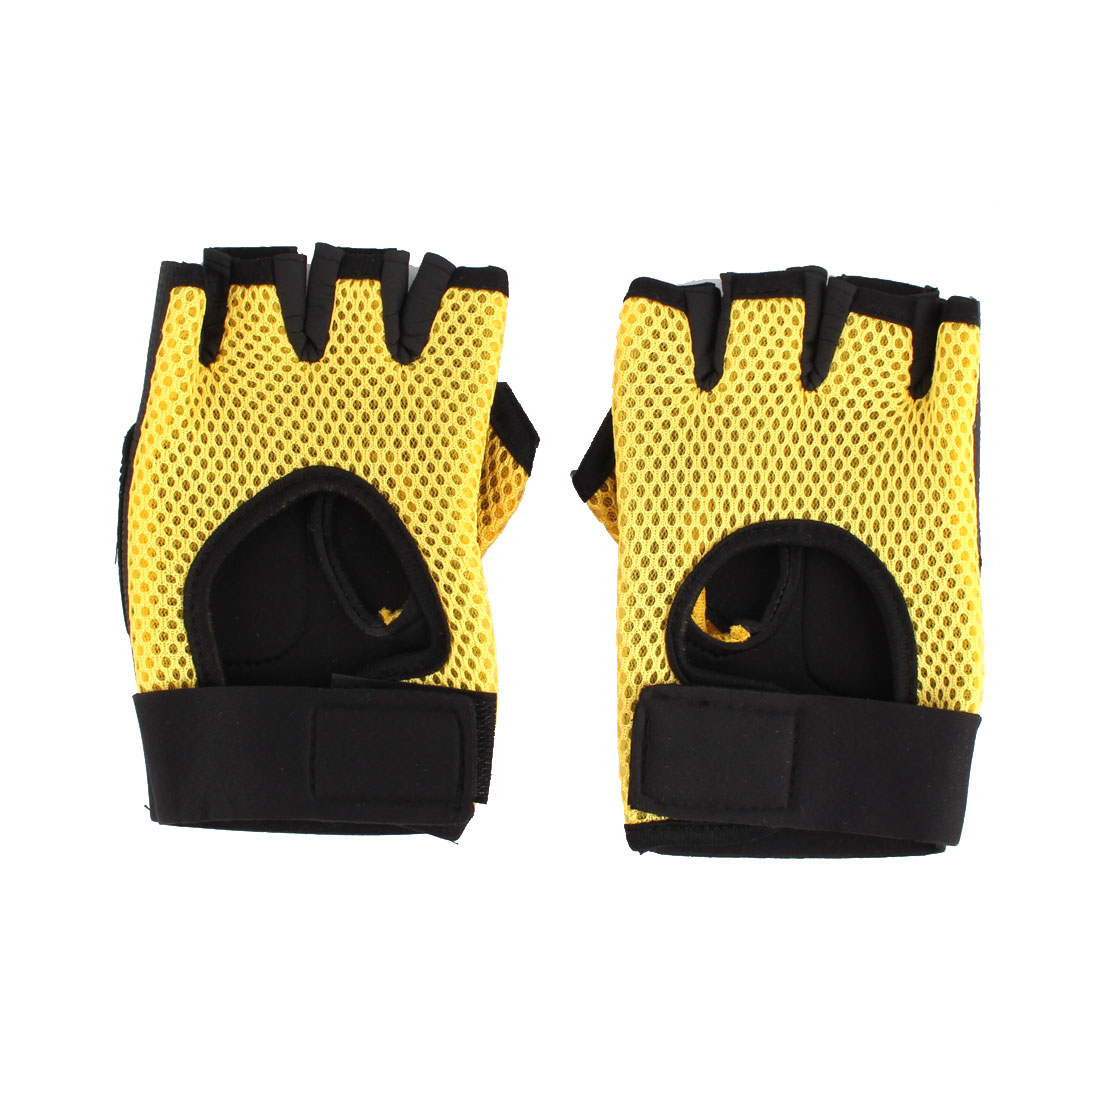 Skating Weightlifting Cycling Sport Half Finger Fingerless Gloves Black Yellow Pair